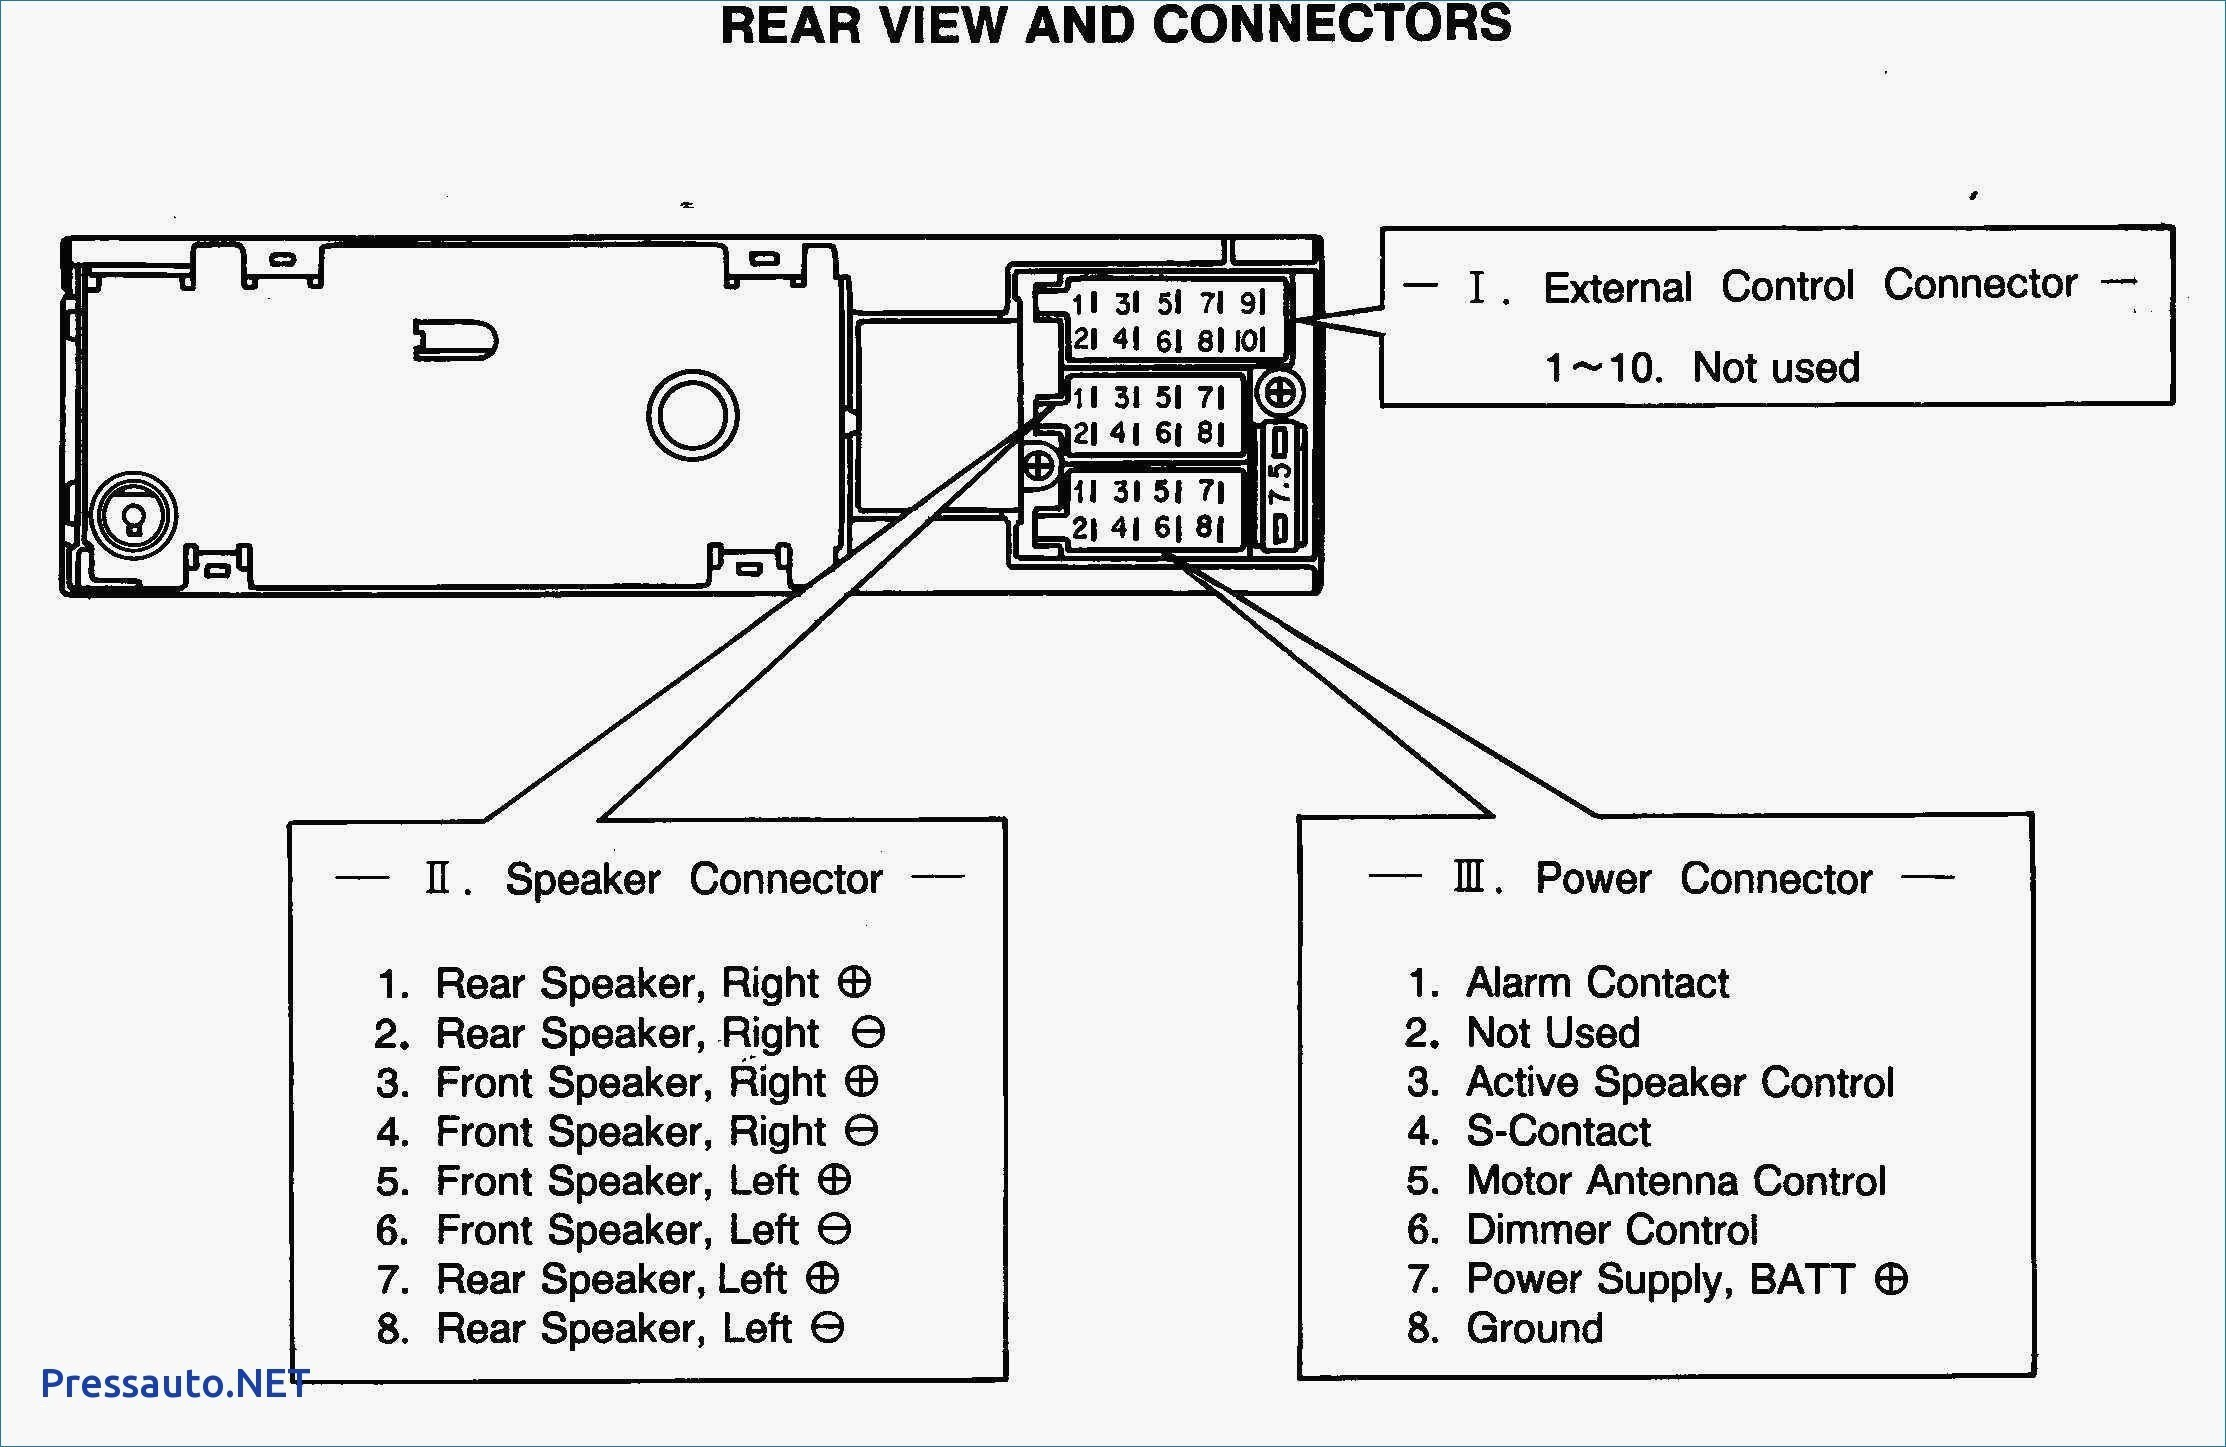 Wiring Diagram for Electric Car Aerial New Car Stereo Wiring Harness Diagram Speaker Wire Diagram